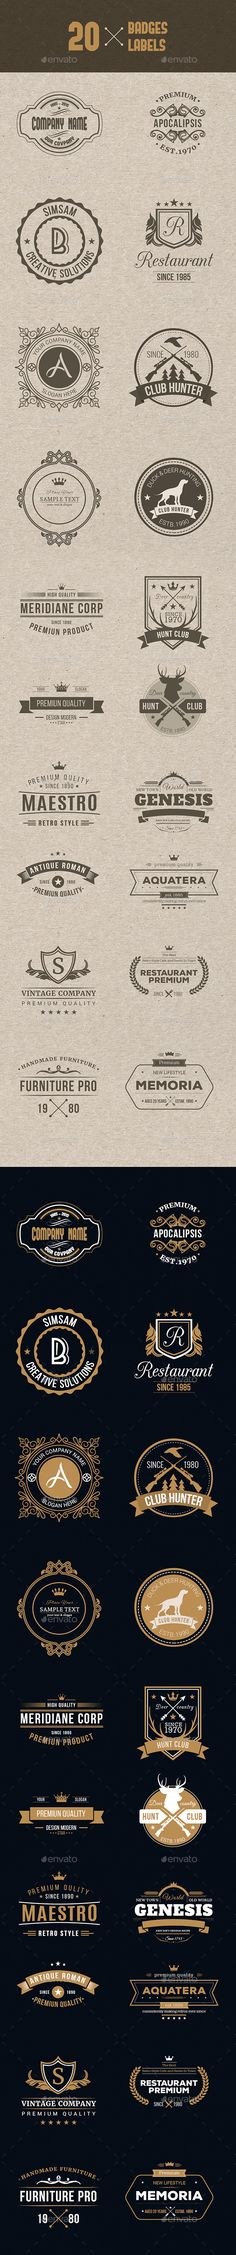 Mega Bundle  Logos And Badges By Designdistrict HttpCrtv